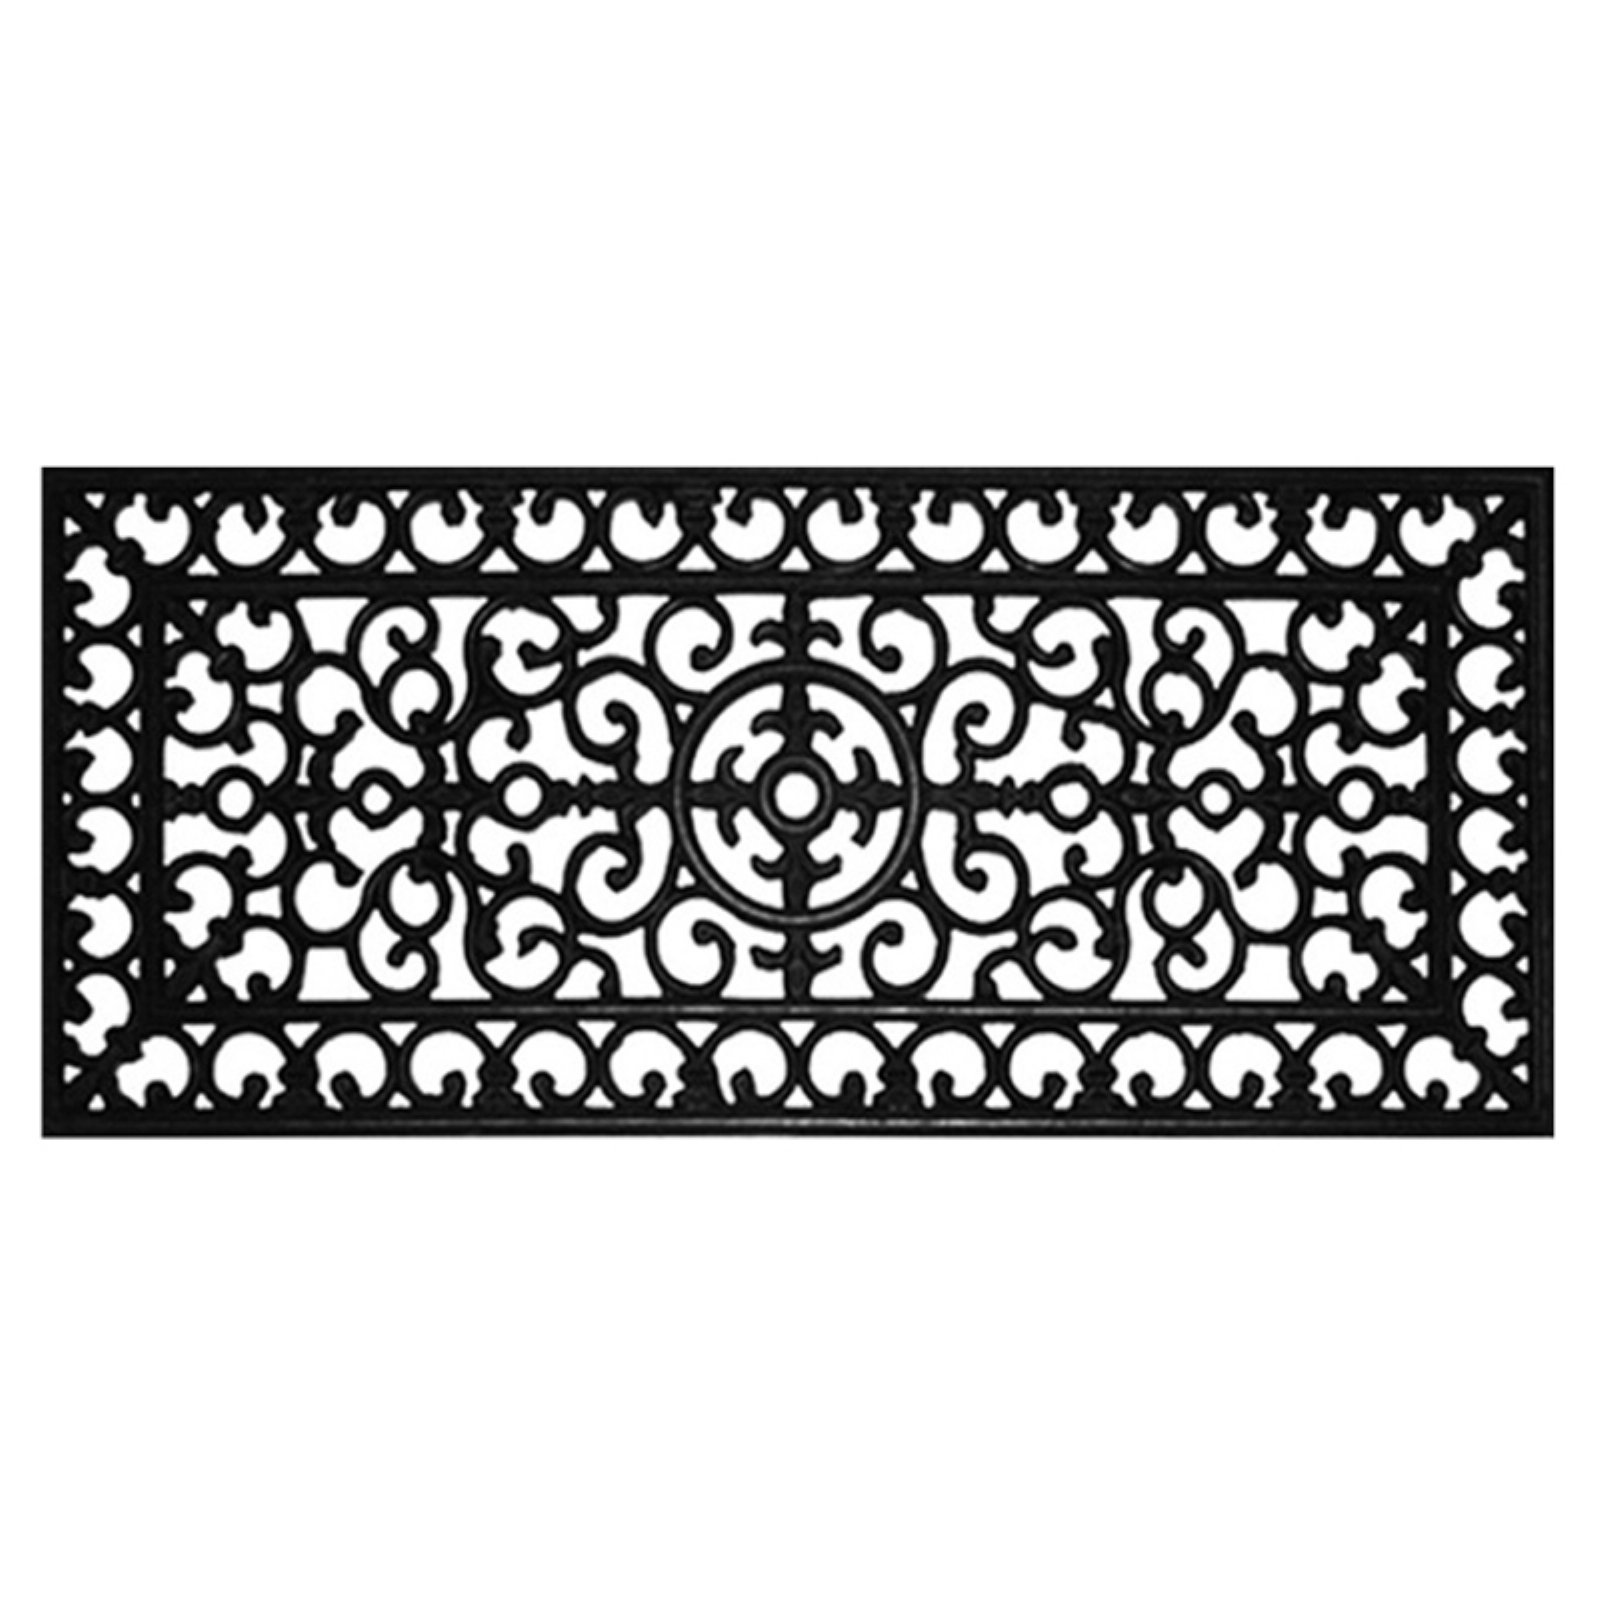 Home & More Rubber Doormat by Supplier Generic